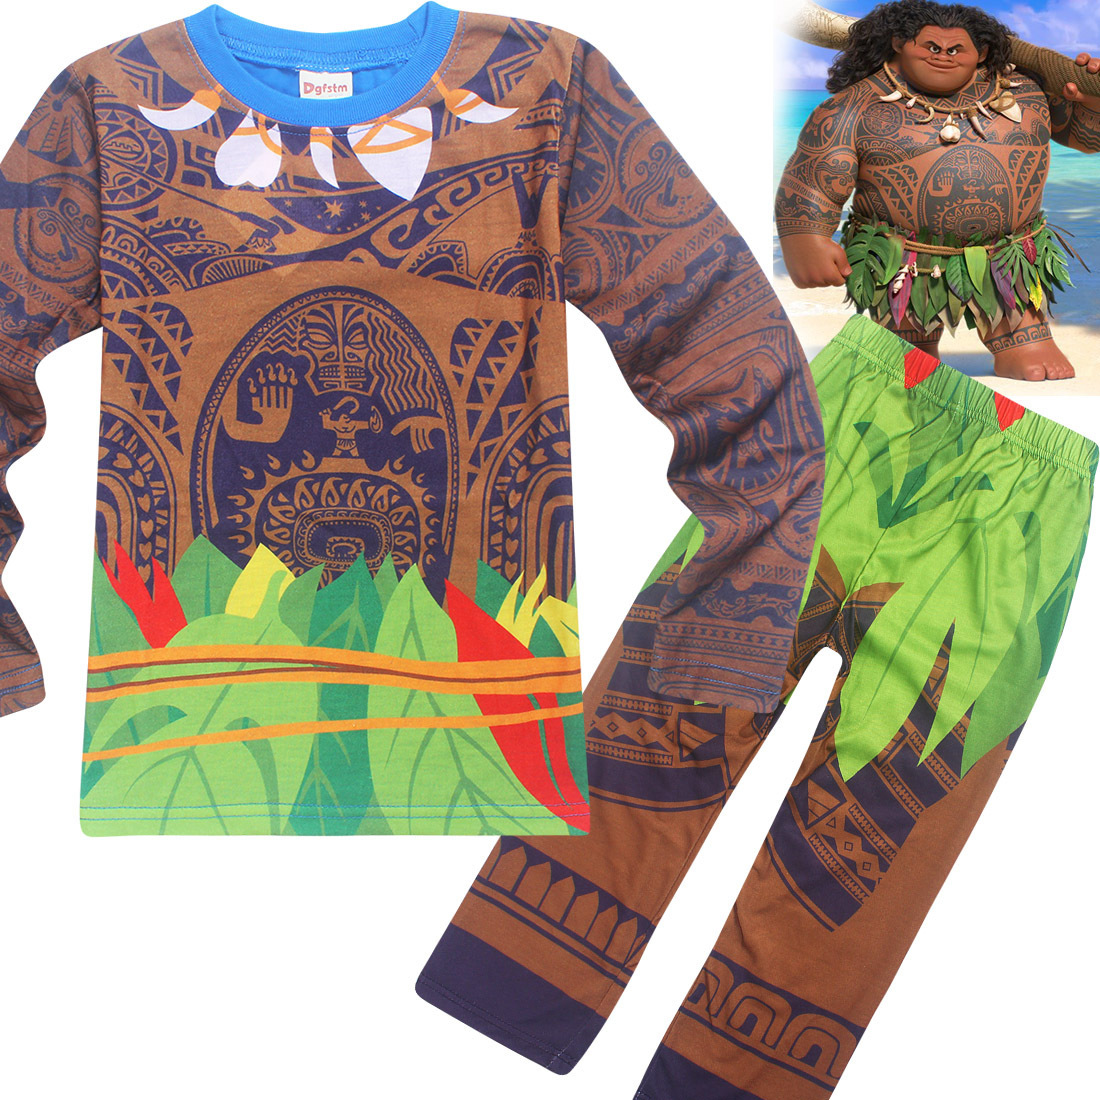 Maui Boys Sleepwear Moana vaiana Costume Girls Pajamas christmas Pyjama Kids Boys Pijamas Long Sleeve T-shirt+Print Clothing Set 2015 new arrive super league christmas outfit pajamas for boys kids children suit st 004